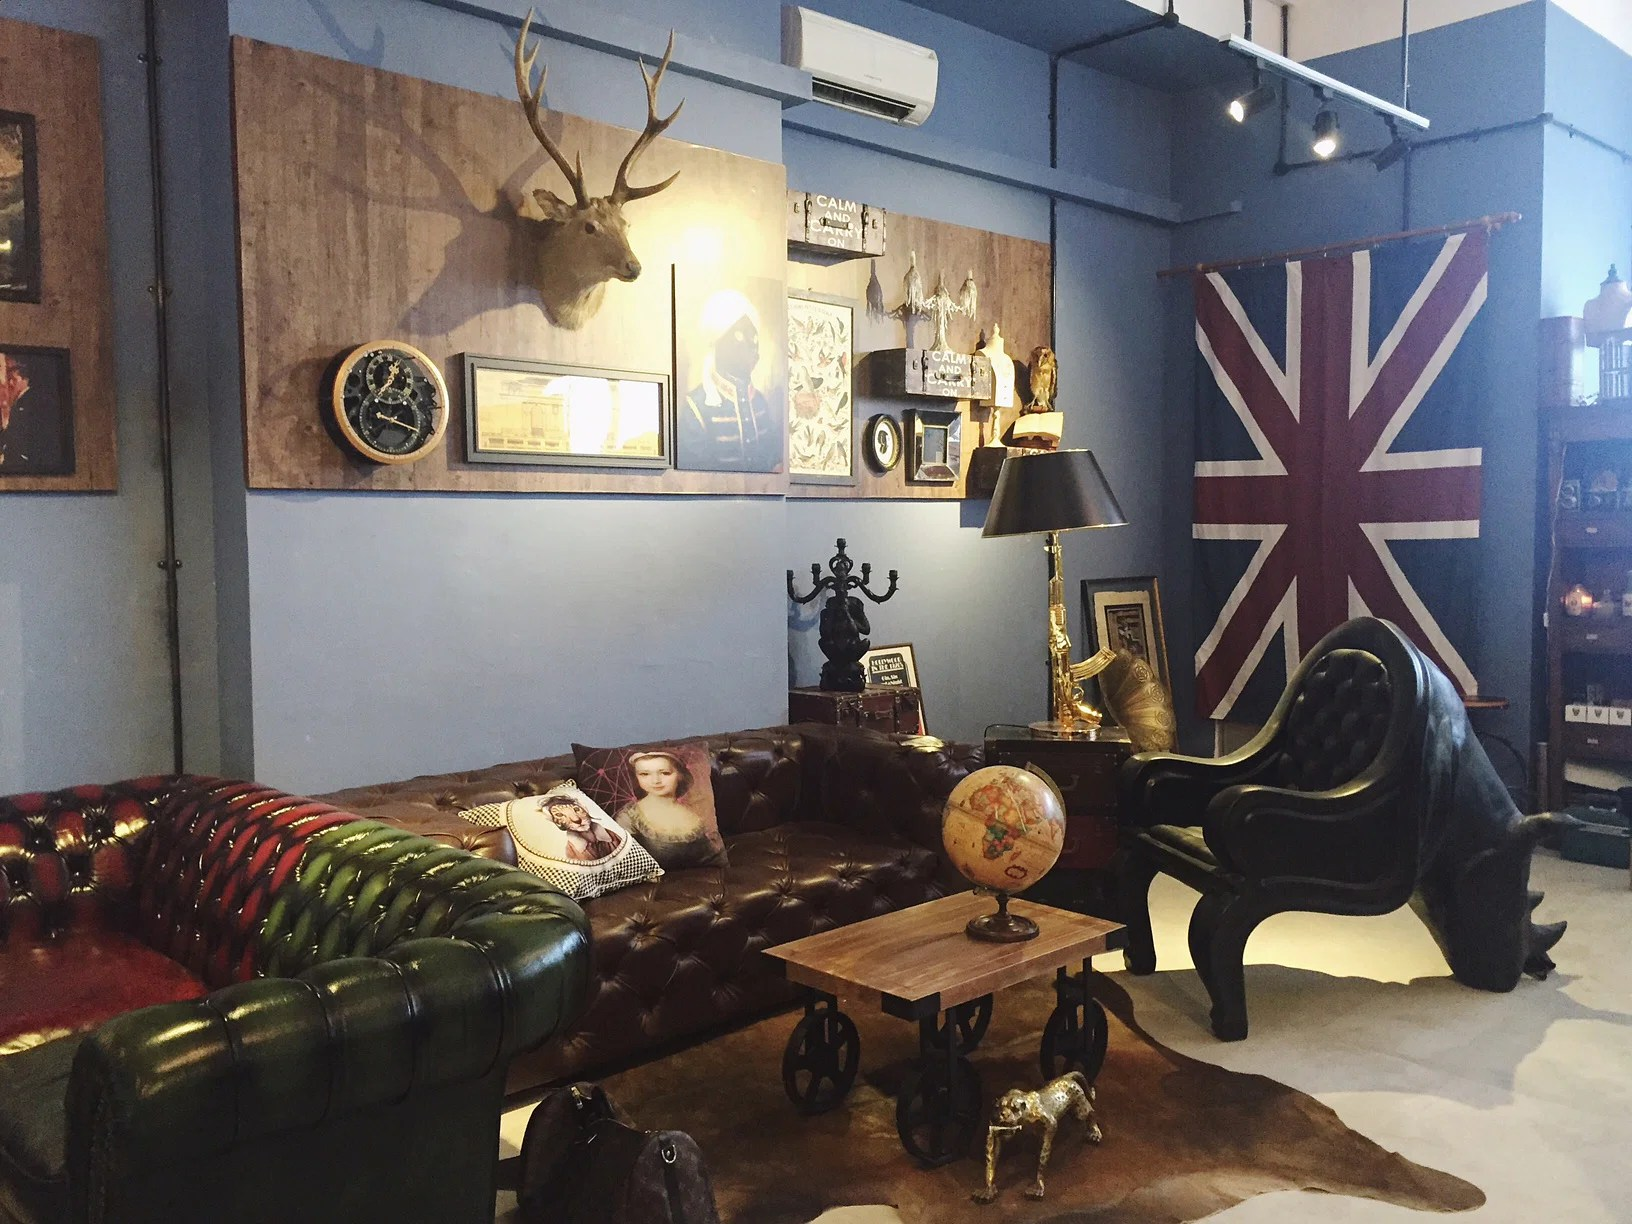 Get taxidermied animals and other curios at Funny Museum